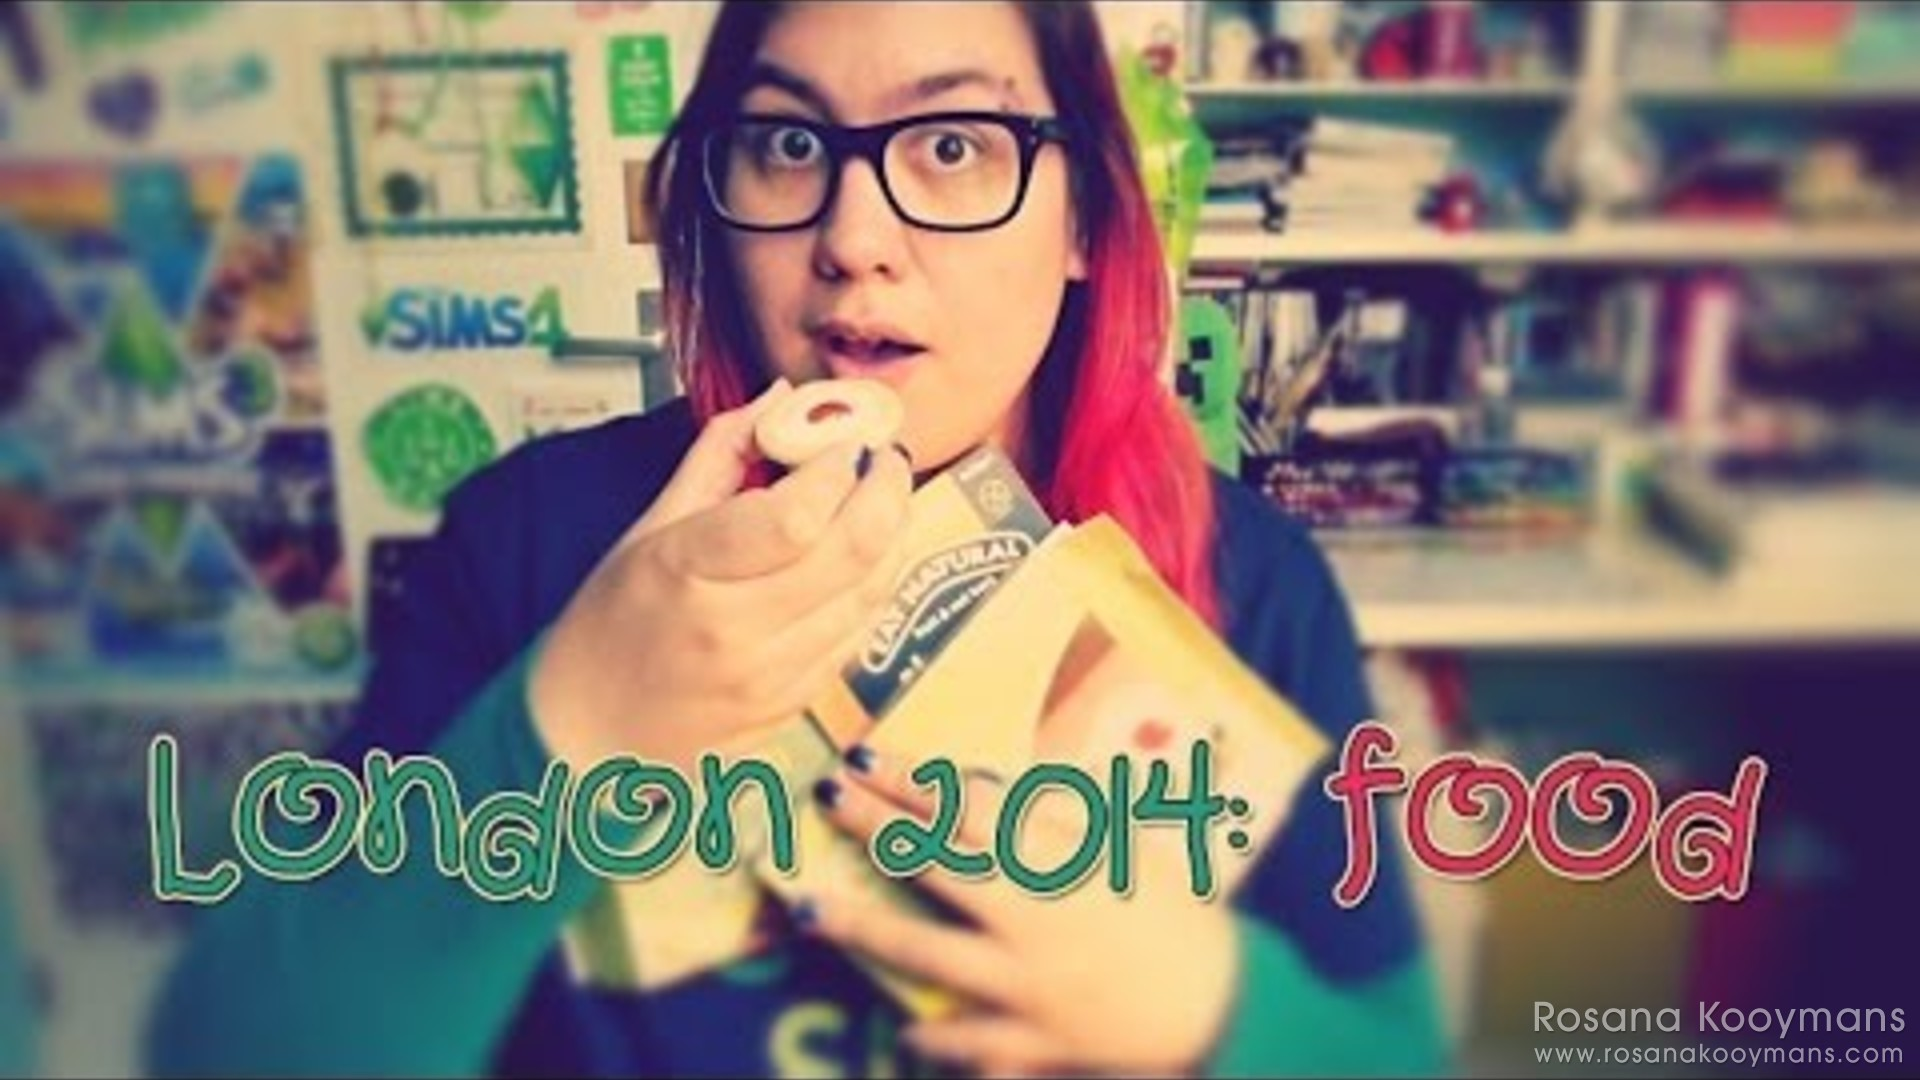 London 2014: Food Vlog!